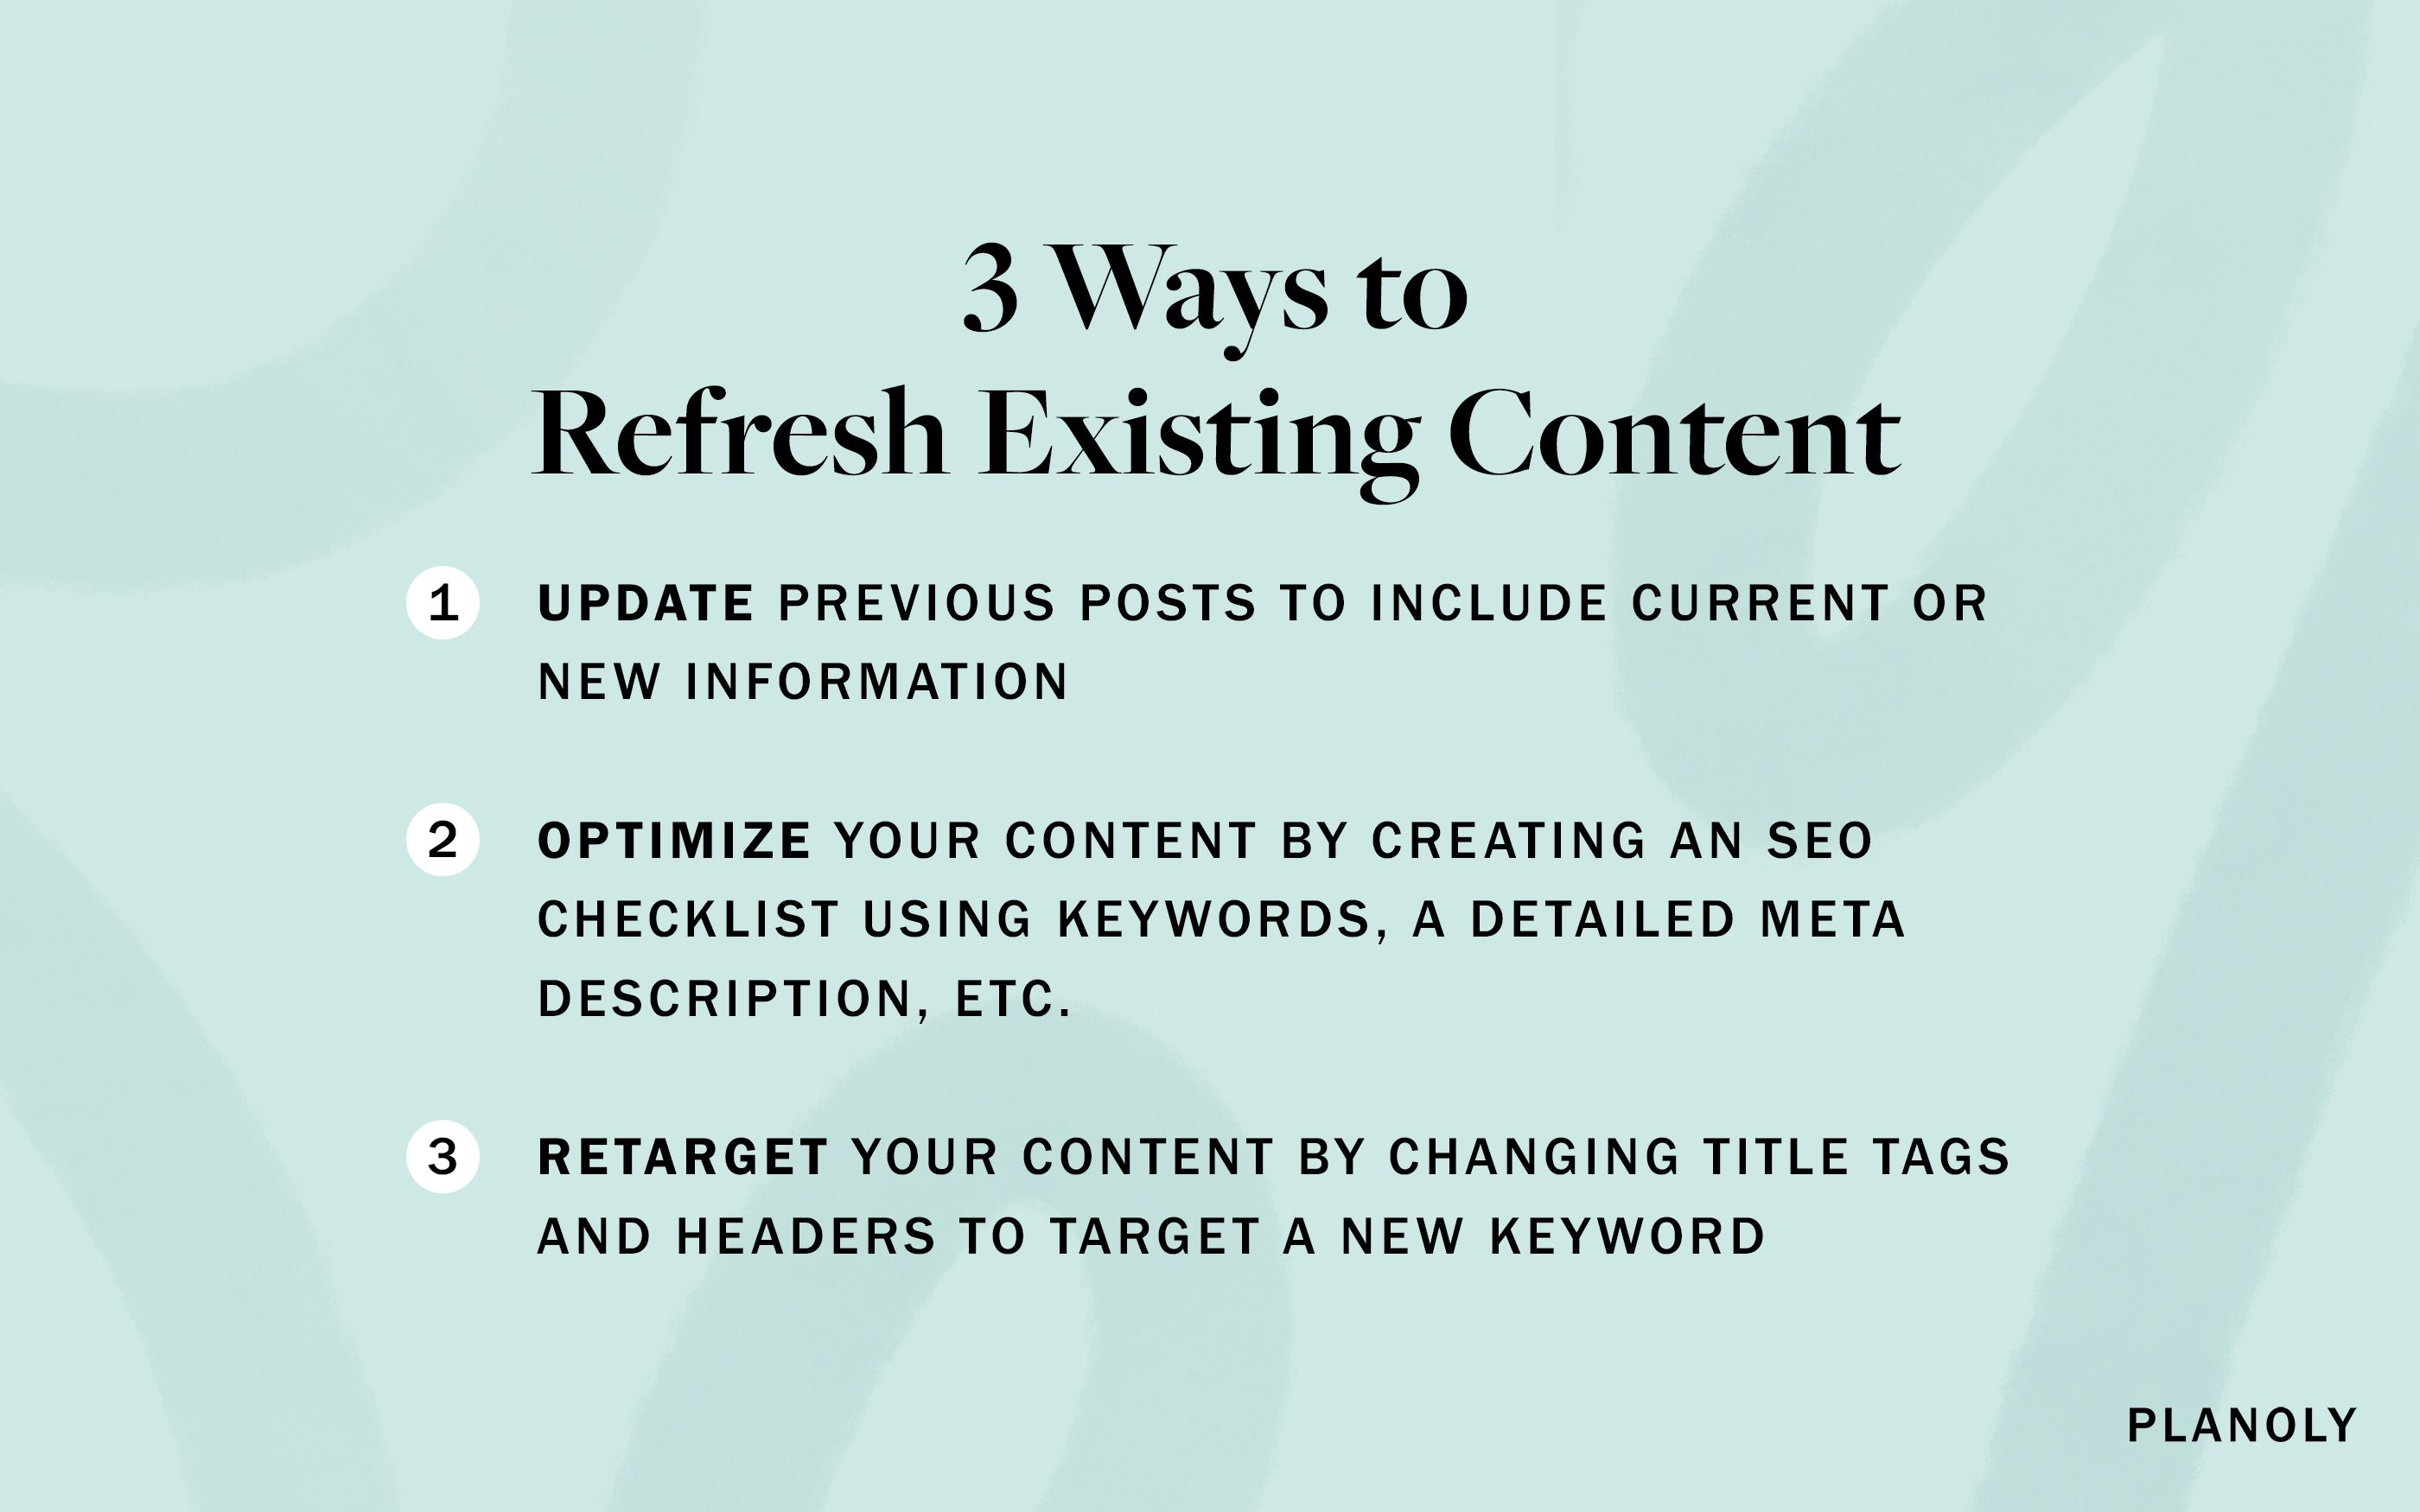 PLANOLY - Blog Post - How to Refresh Existing Content - Image 3